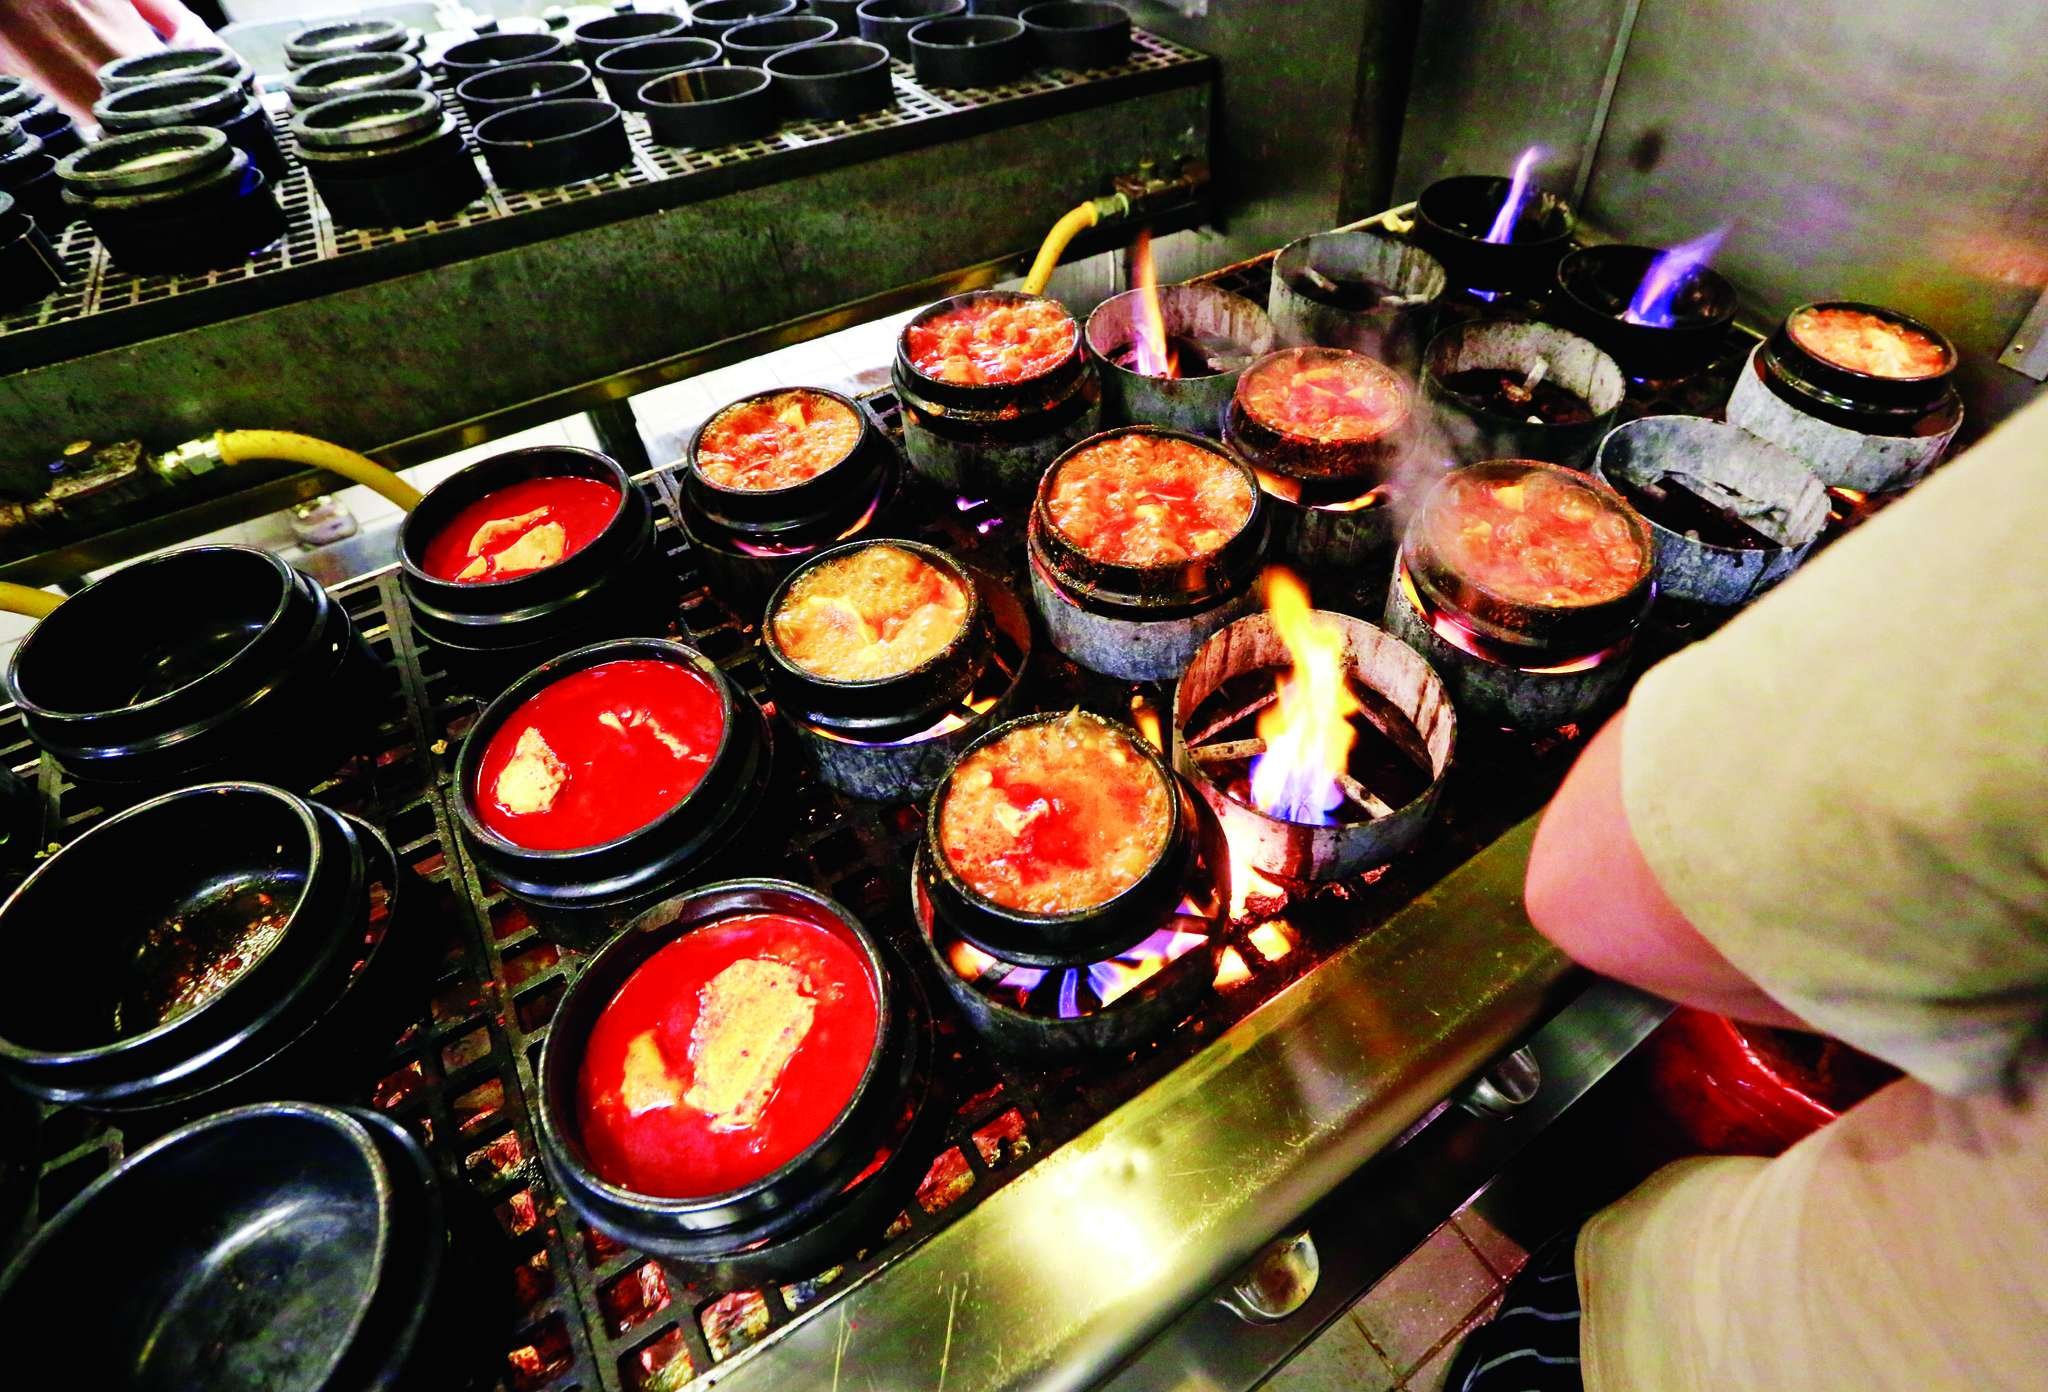 Dubu´s signature dish, soondubu, simmers in pots. The tofu stew takes several weeks to make.